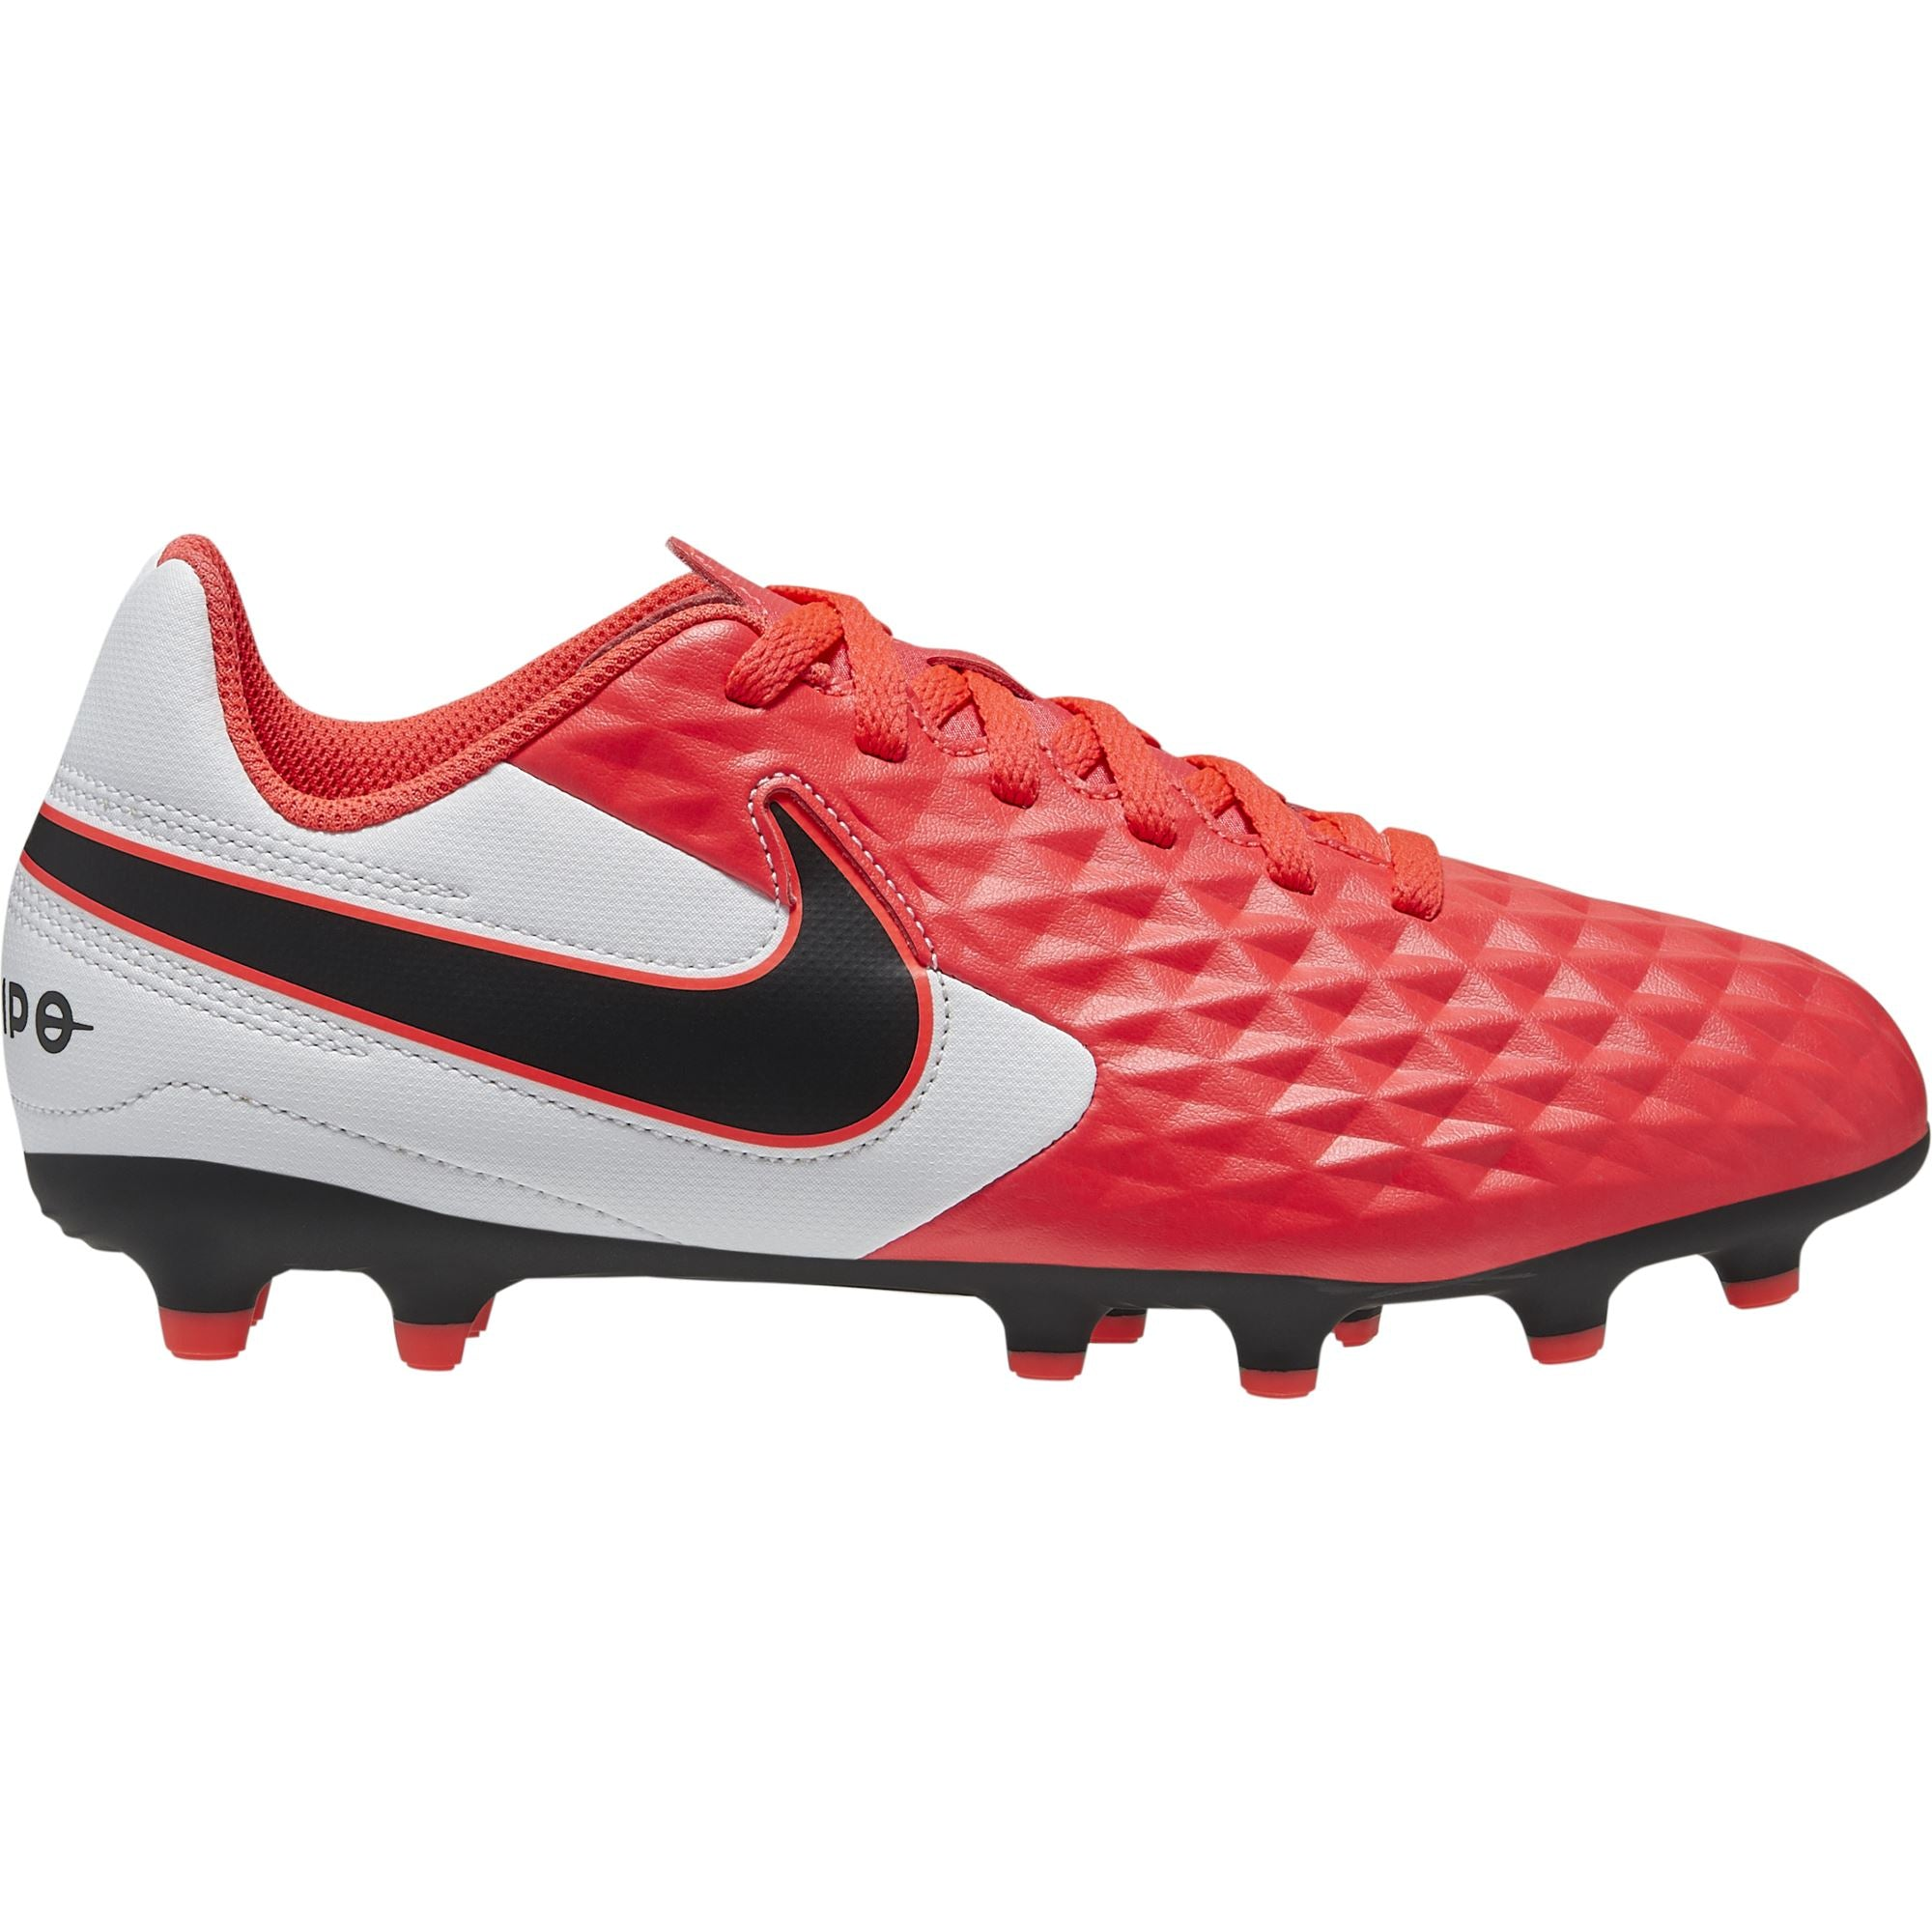 Nike JR Legend 8 Academy - Laser Crimson/Black/White SP-Footwear-Kids Nike